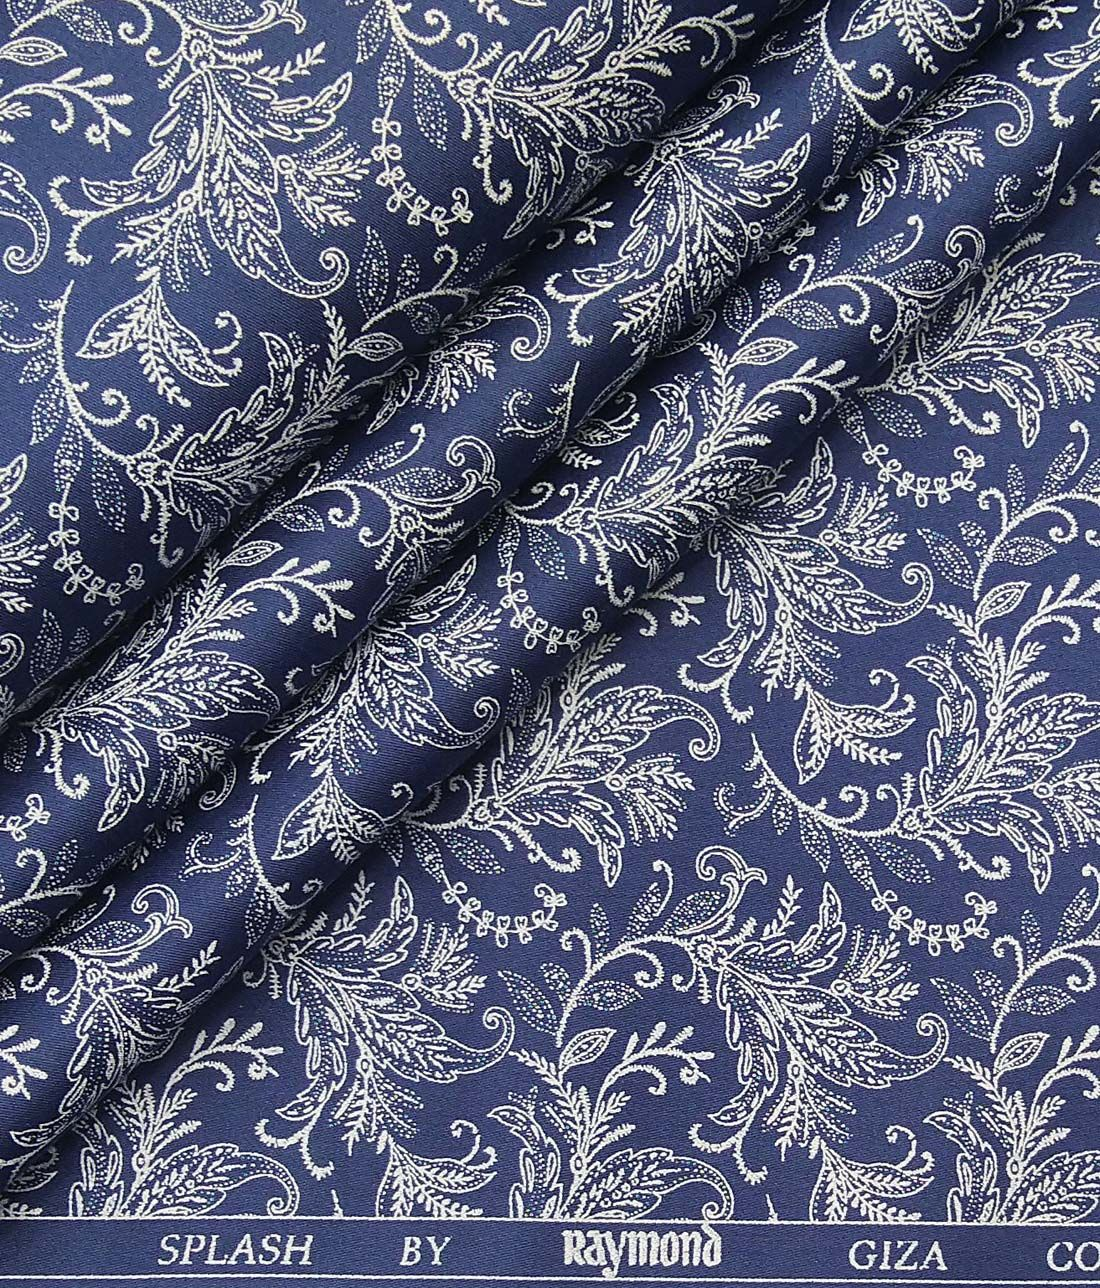 1de7de4fca50 Raymond Dark Royal Blue 100% Giza Cotton White Floral Print Shirt Fabric  (1.60 M)